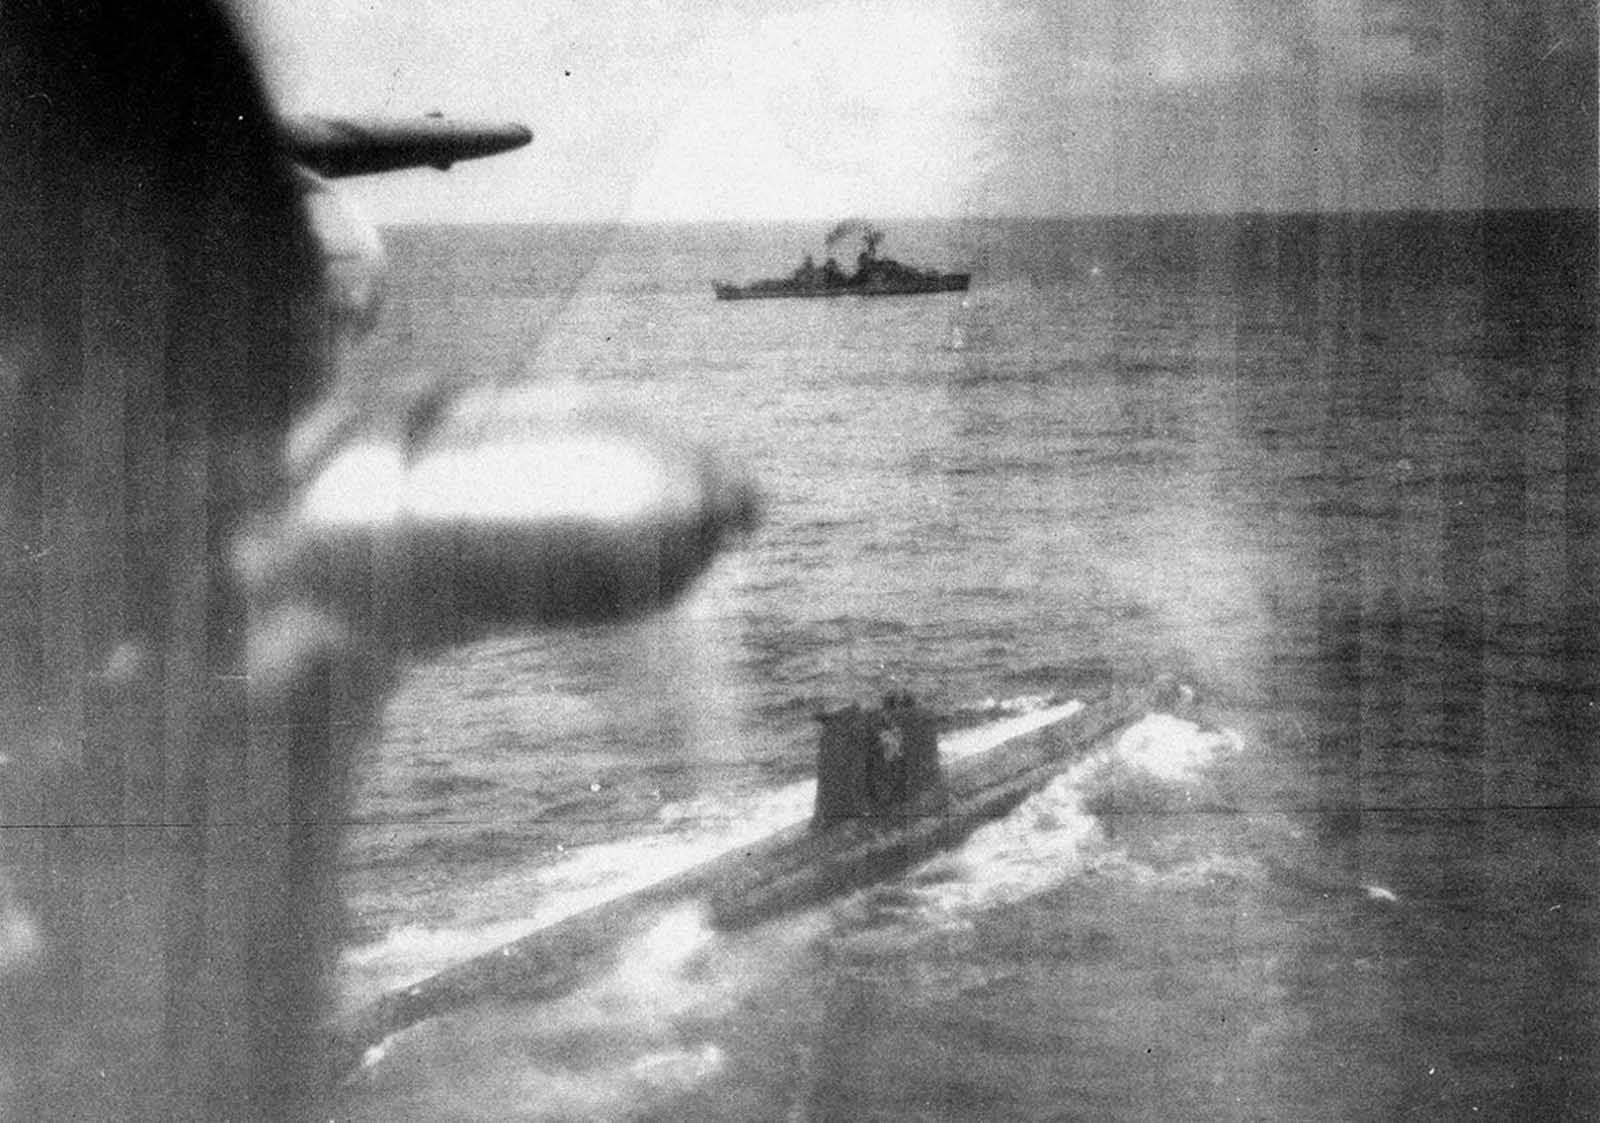 U.S. Navy surveillance of the first Soviet F-class submarine to surface near the Cuban quarantine line on October 25, 1962.